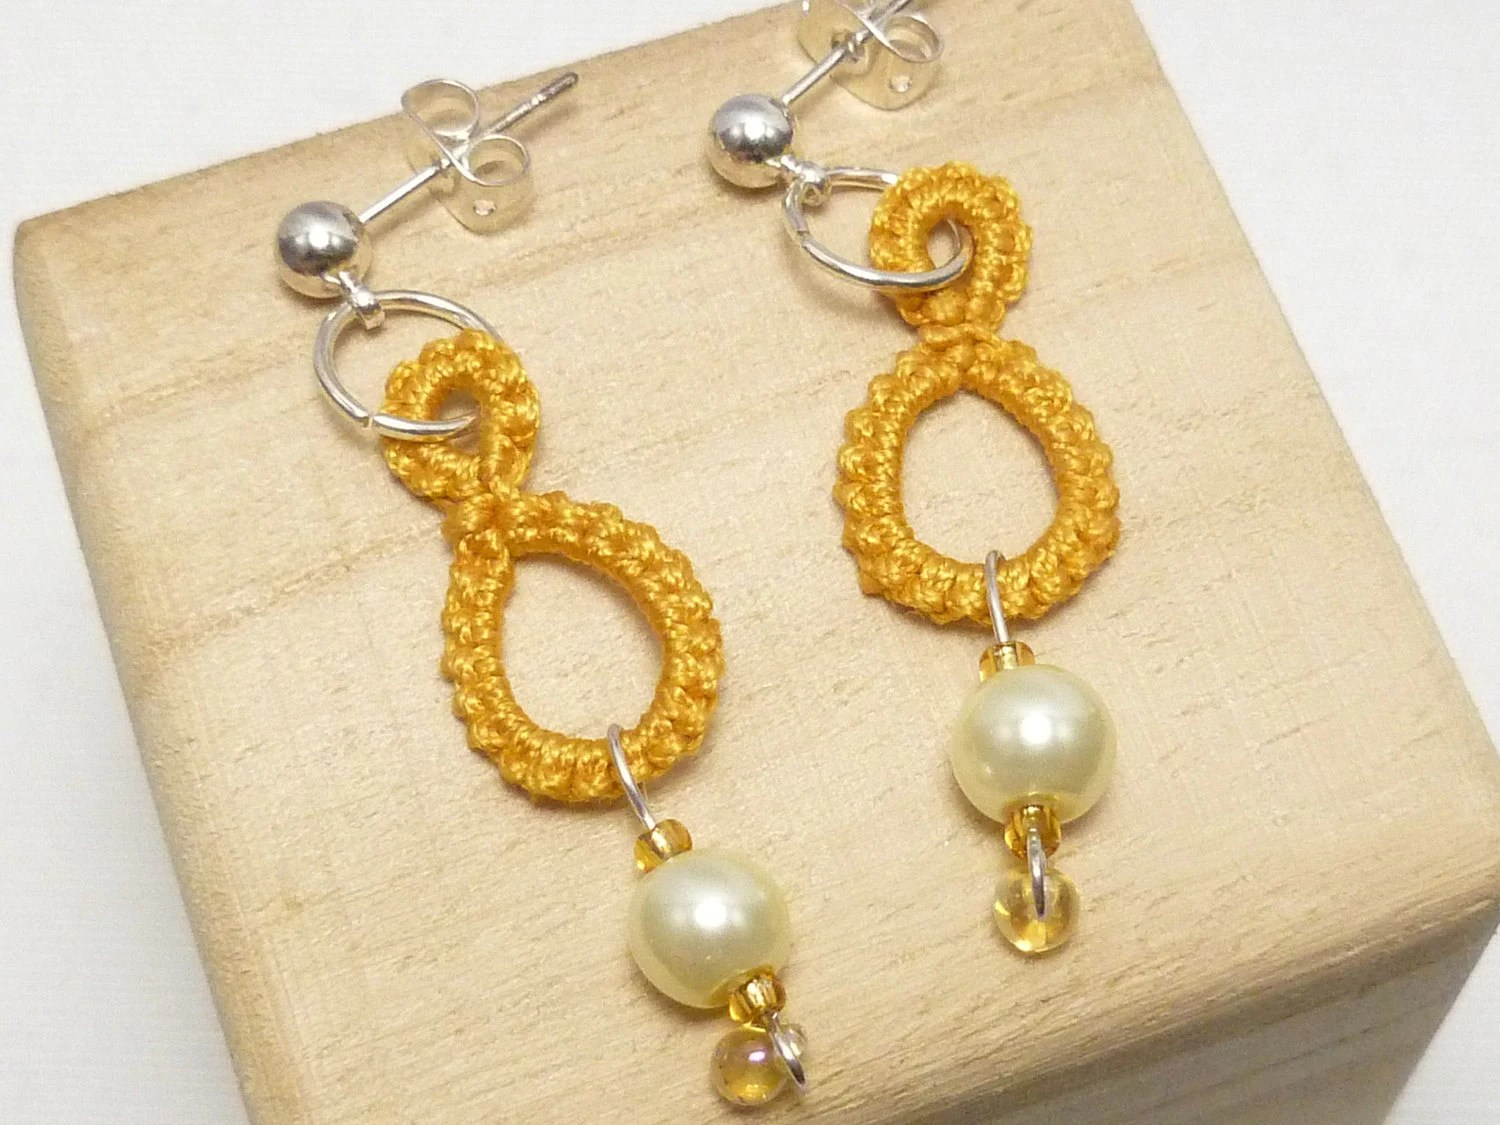 Tatted jewelry Ring earrings in Gold with ivory pearls -Drops